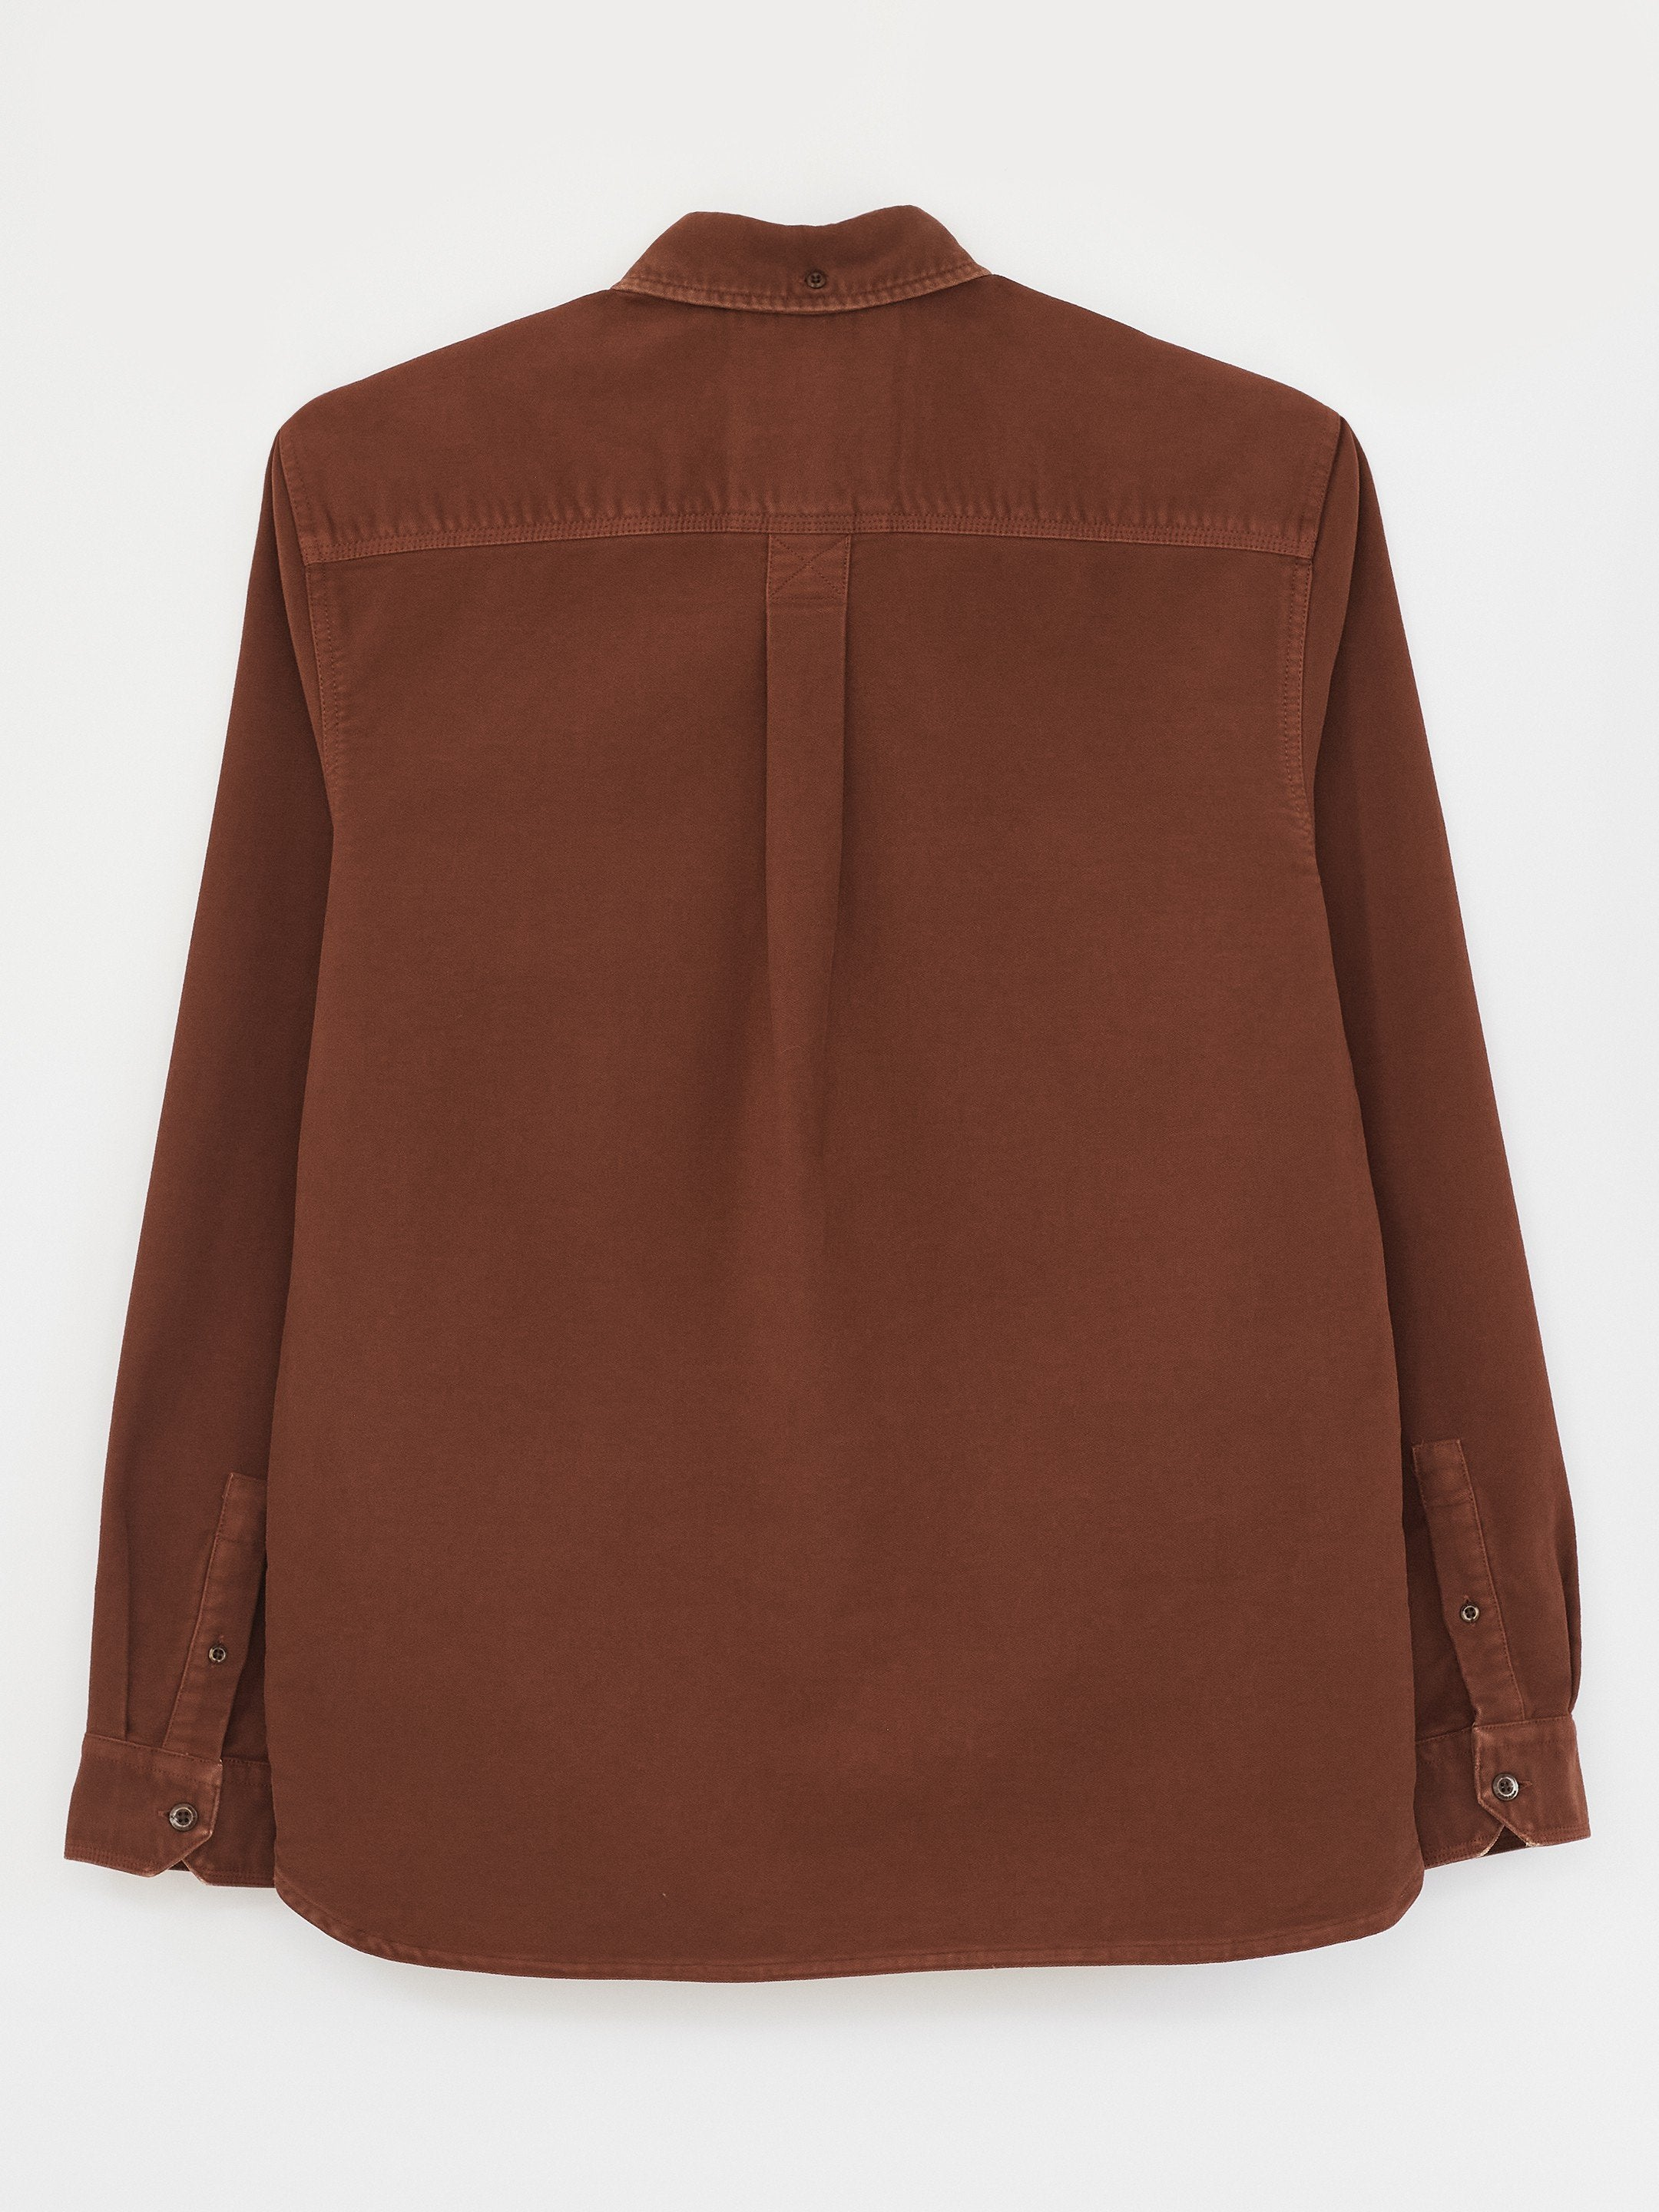 Brocken Moleskin Shirt in Dark Orange